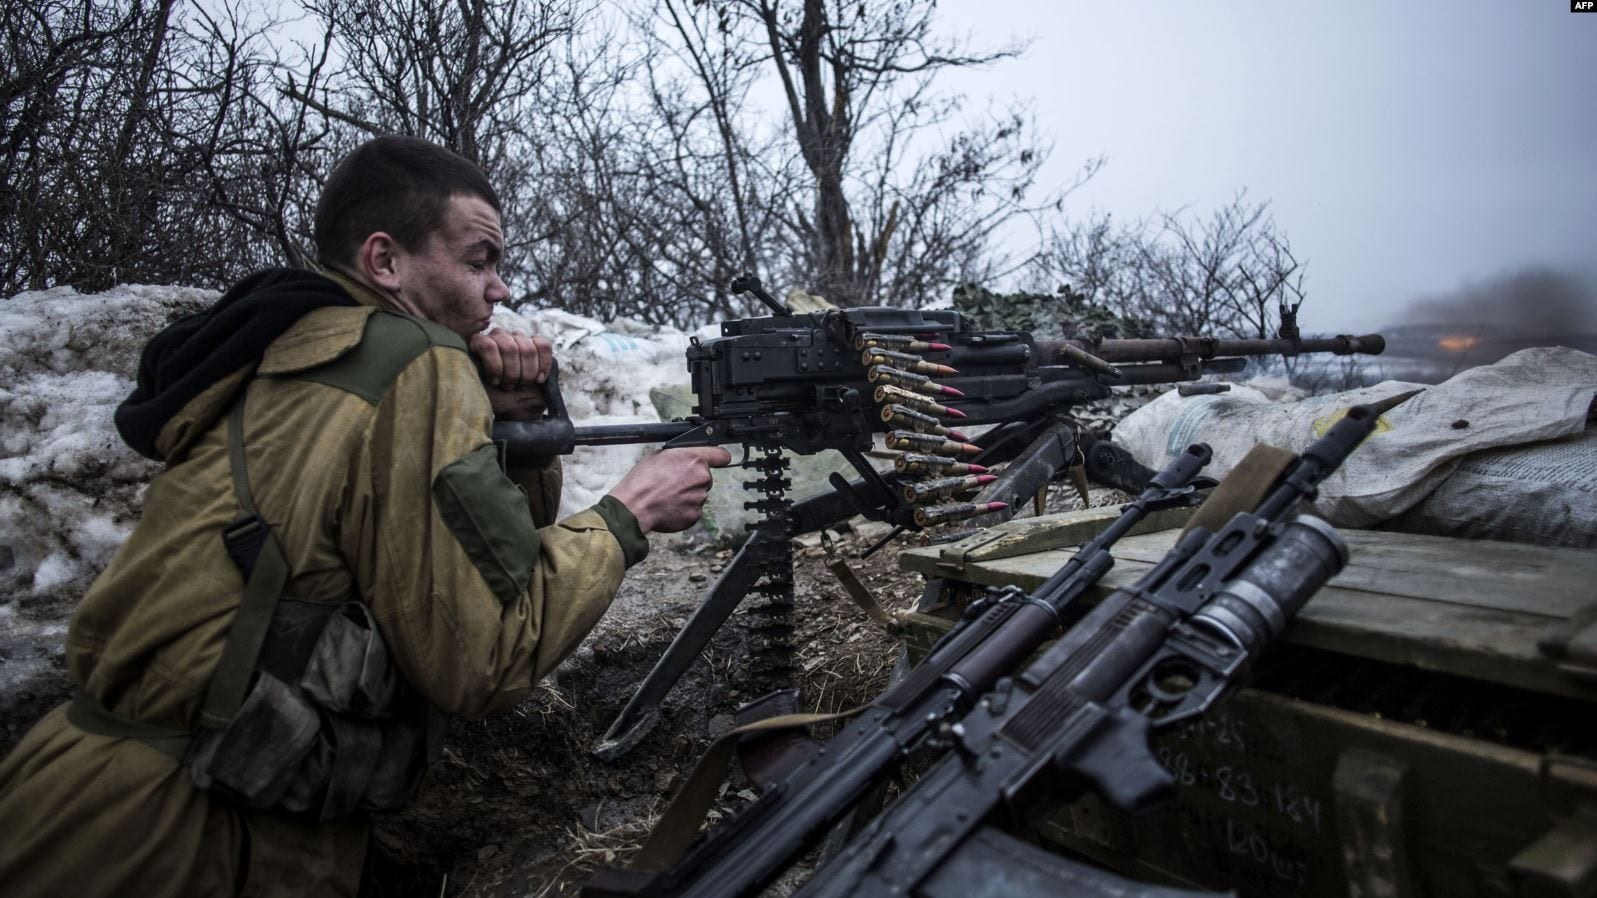 Image A pro-Russia separatist fires his machine gun toward Ukrainian Army positions near Debaltseve in late January 2015.